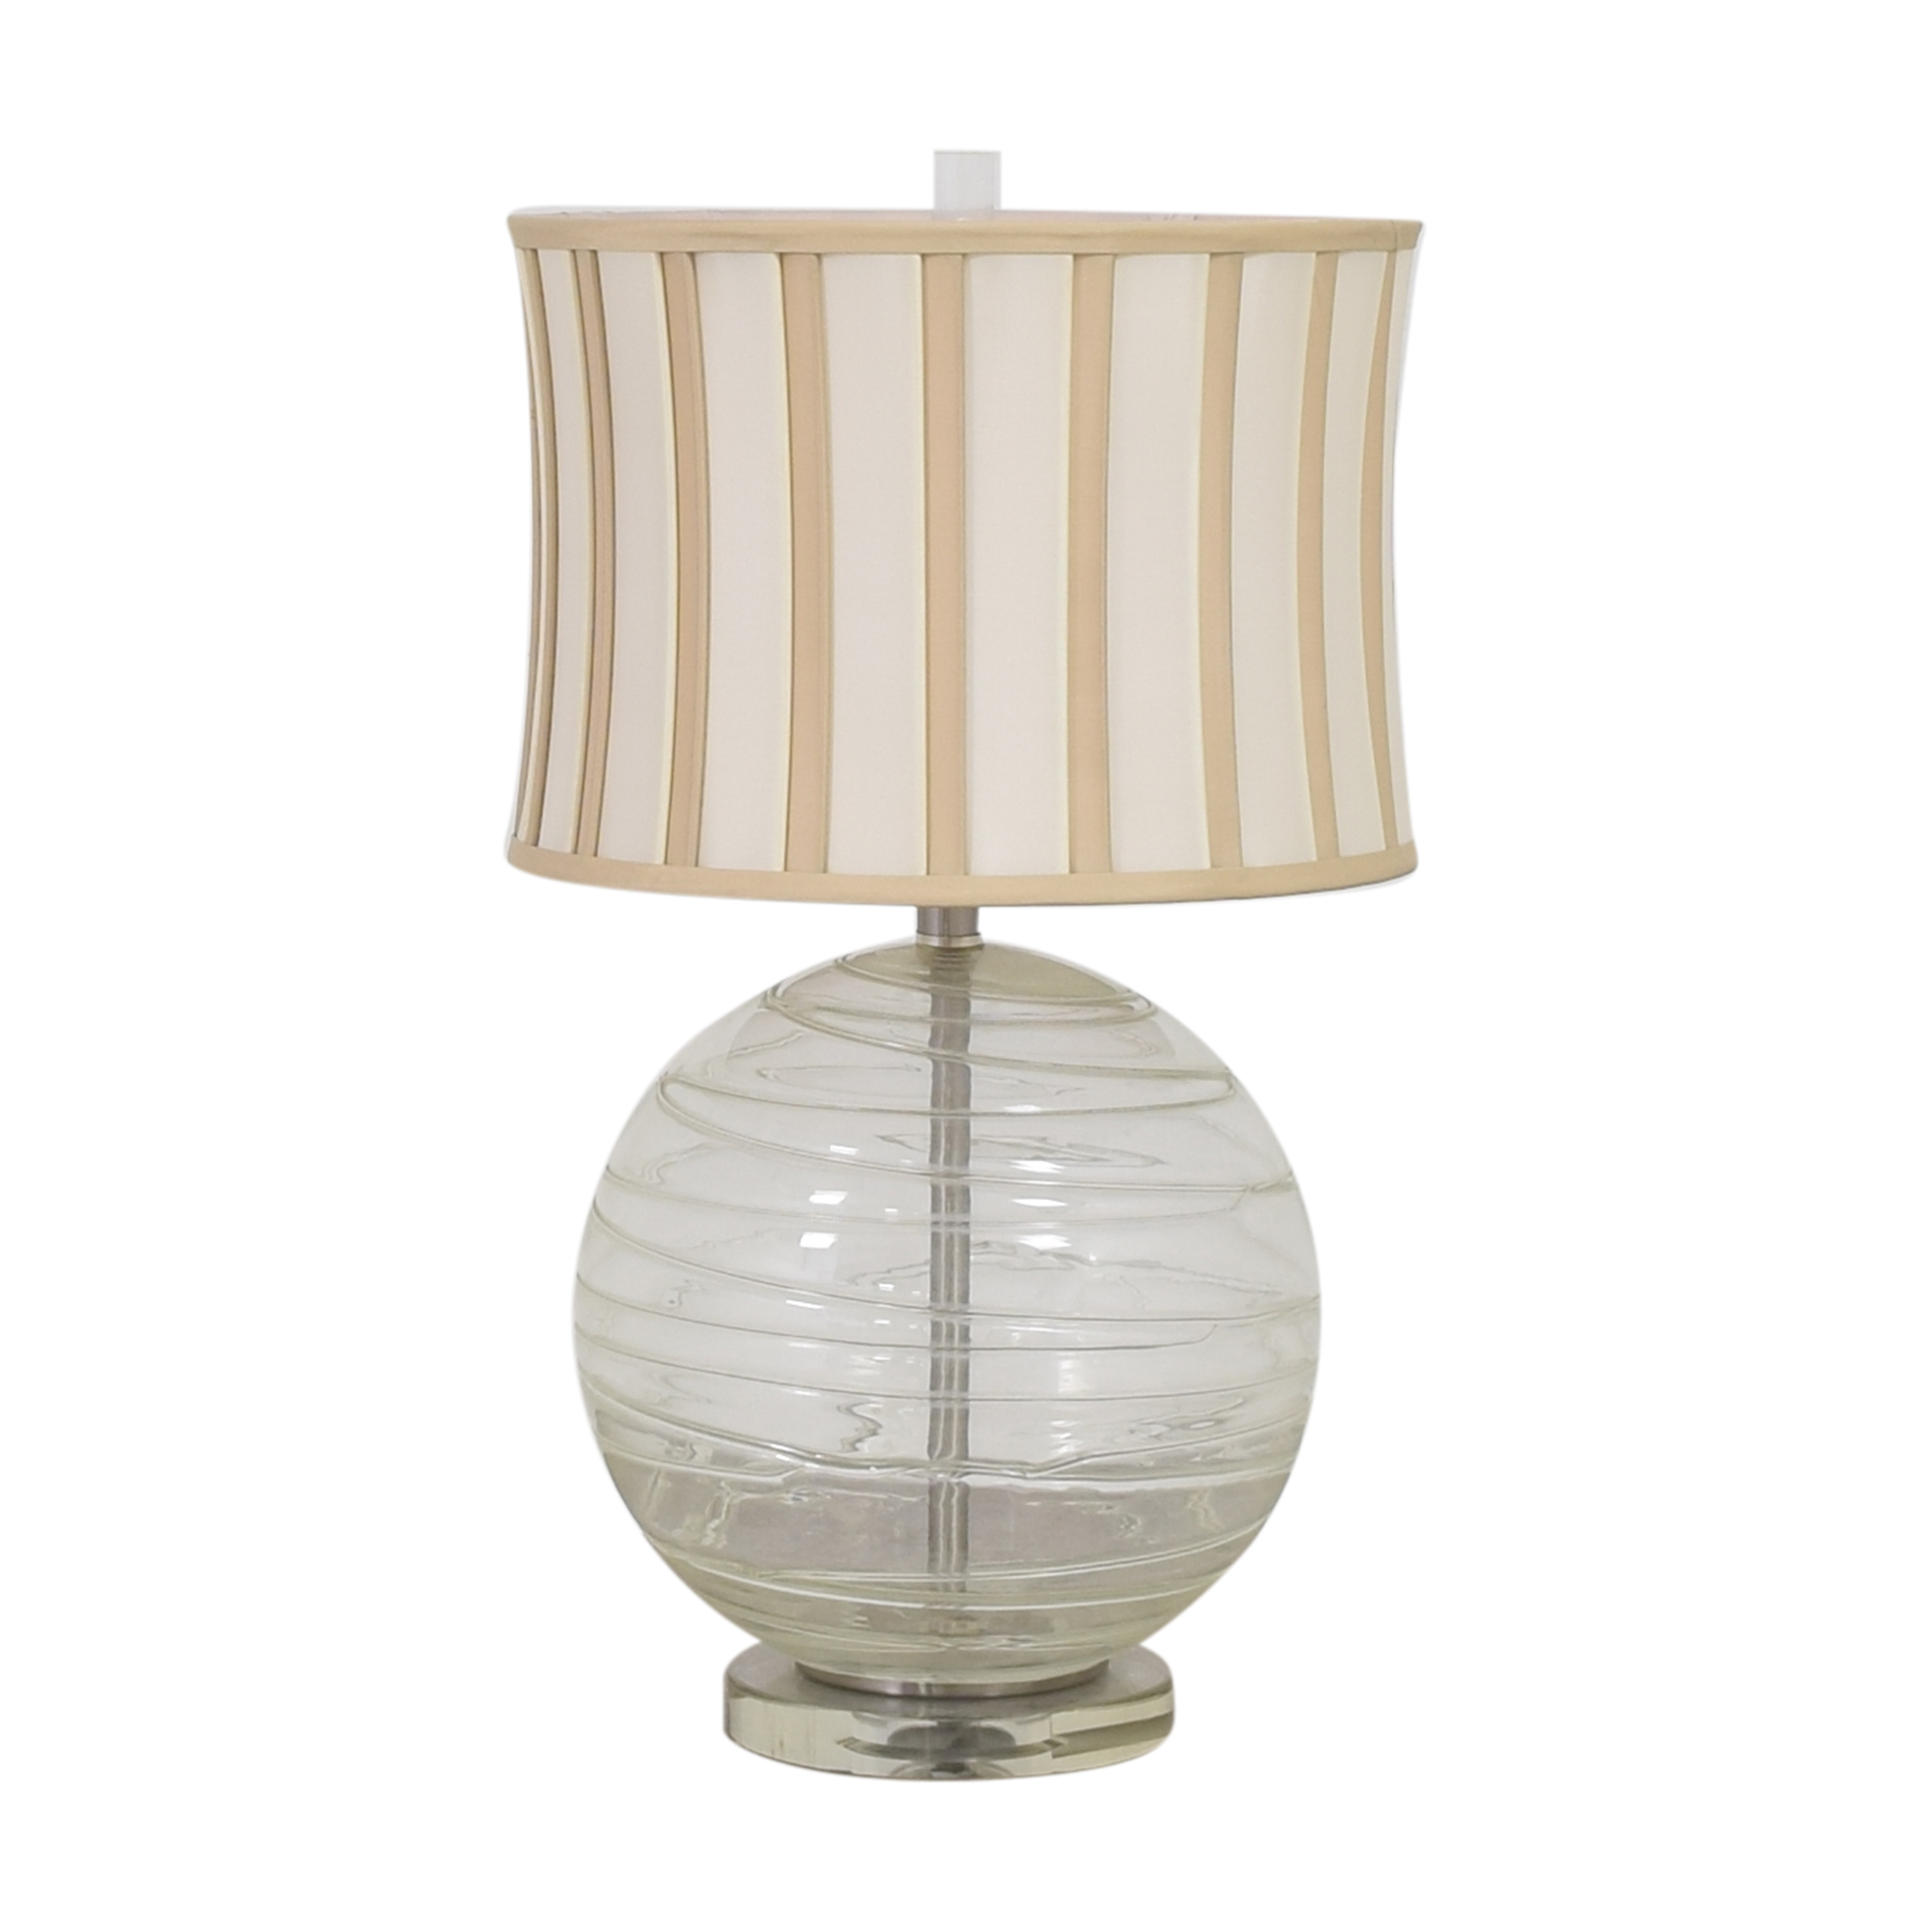 Striped Orb Lamp price